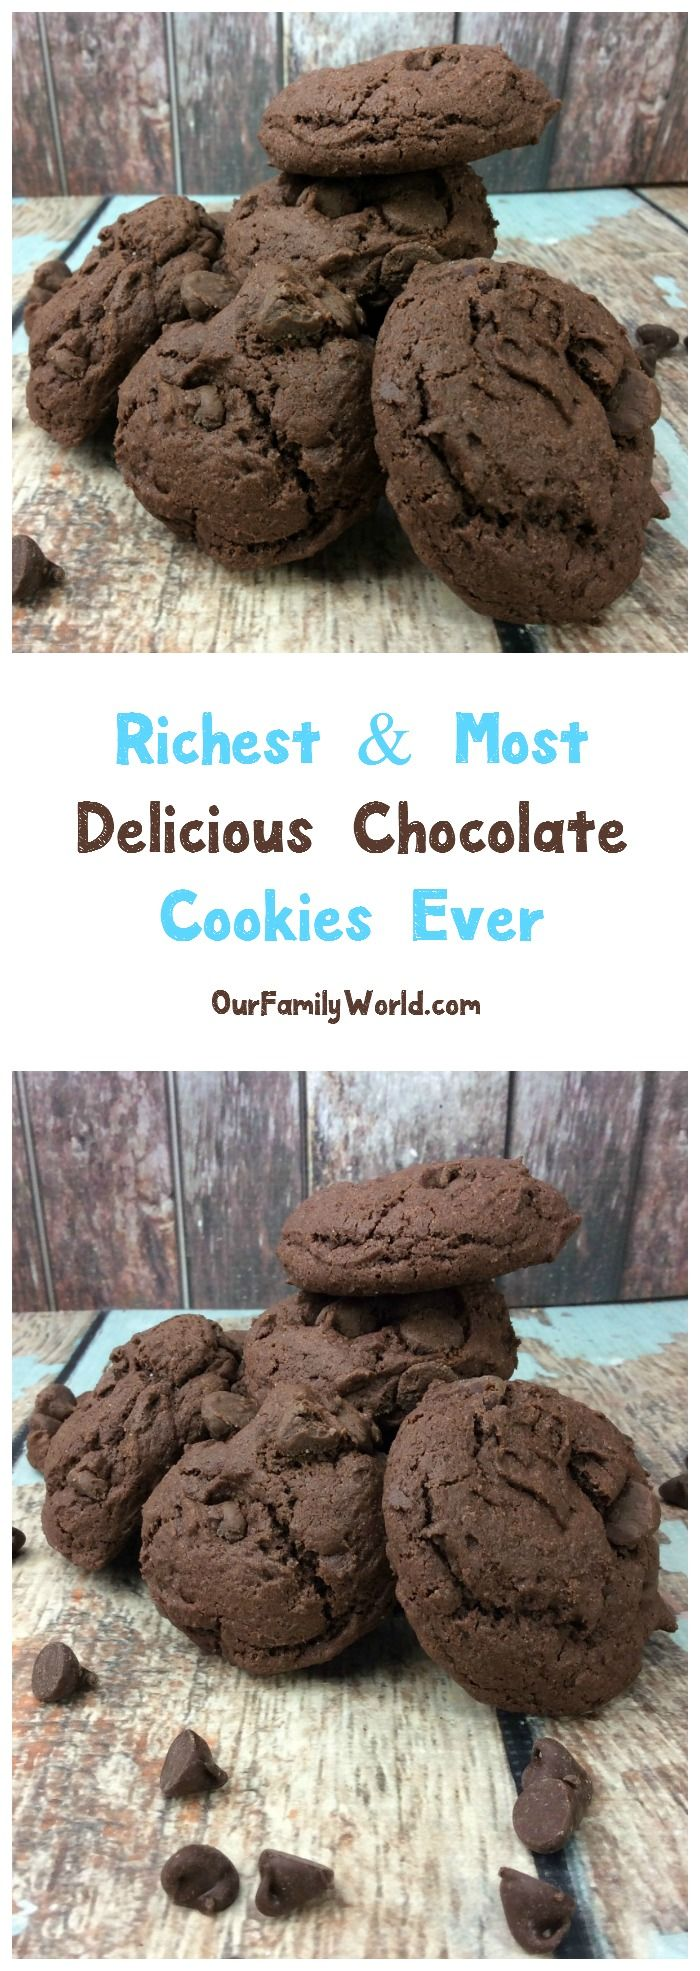 Get ready for the richest, most delicious chocolate cookie recipe you've ever tasted! You won't believe how easy they are to make! Check it out!